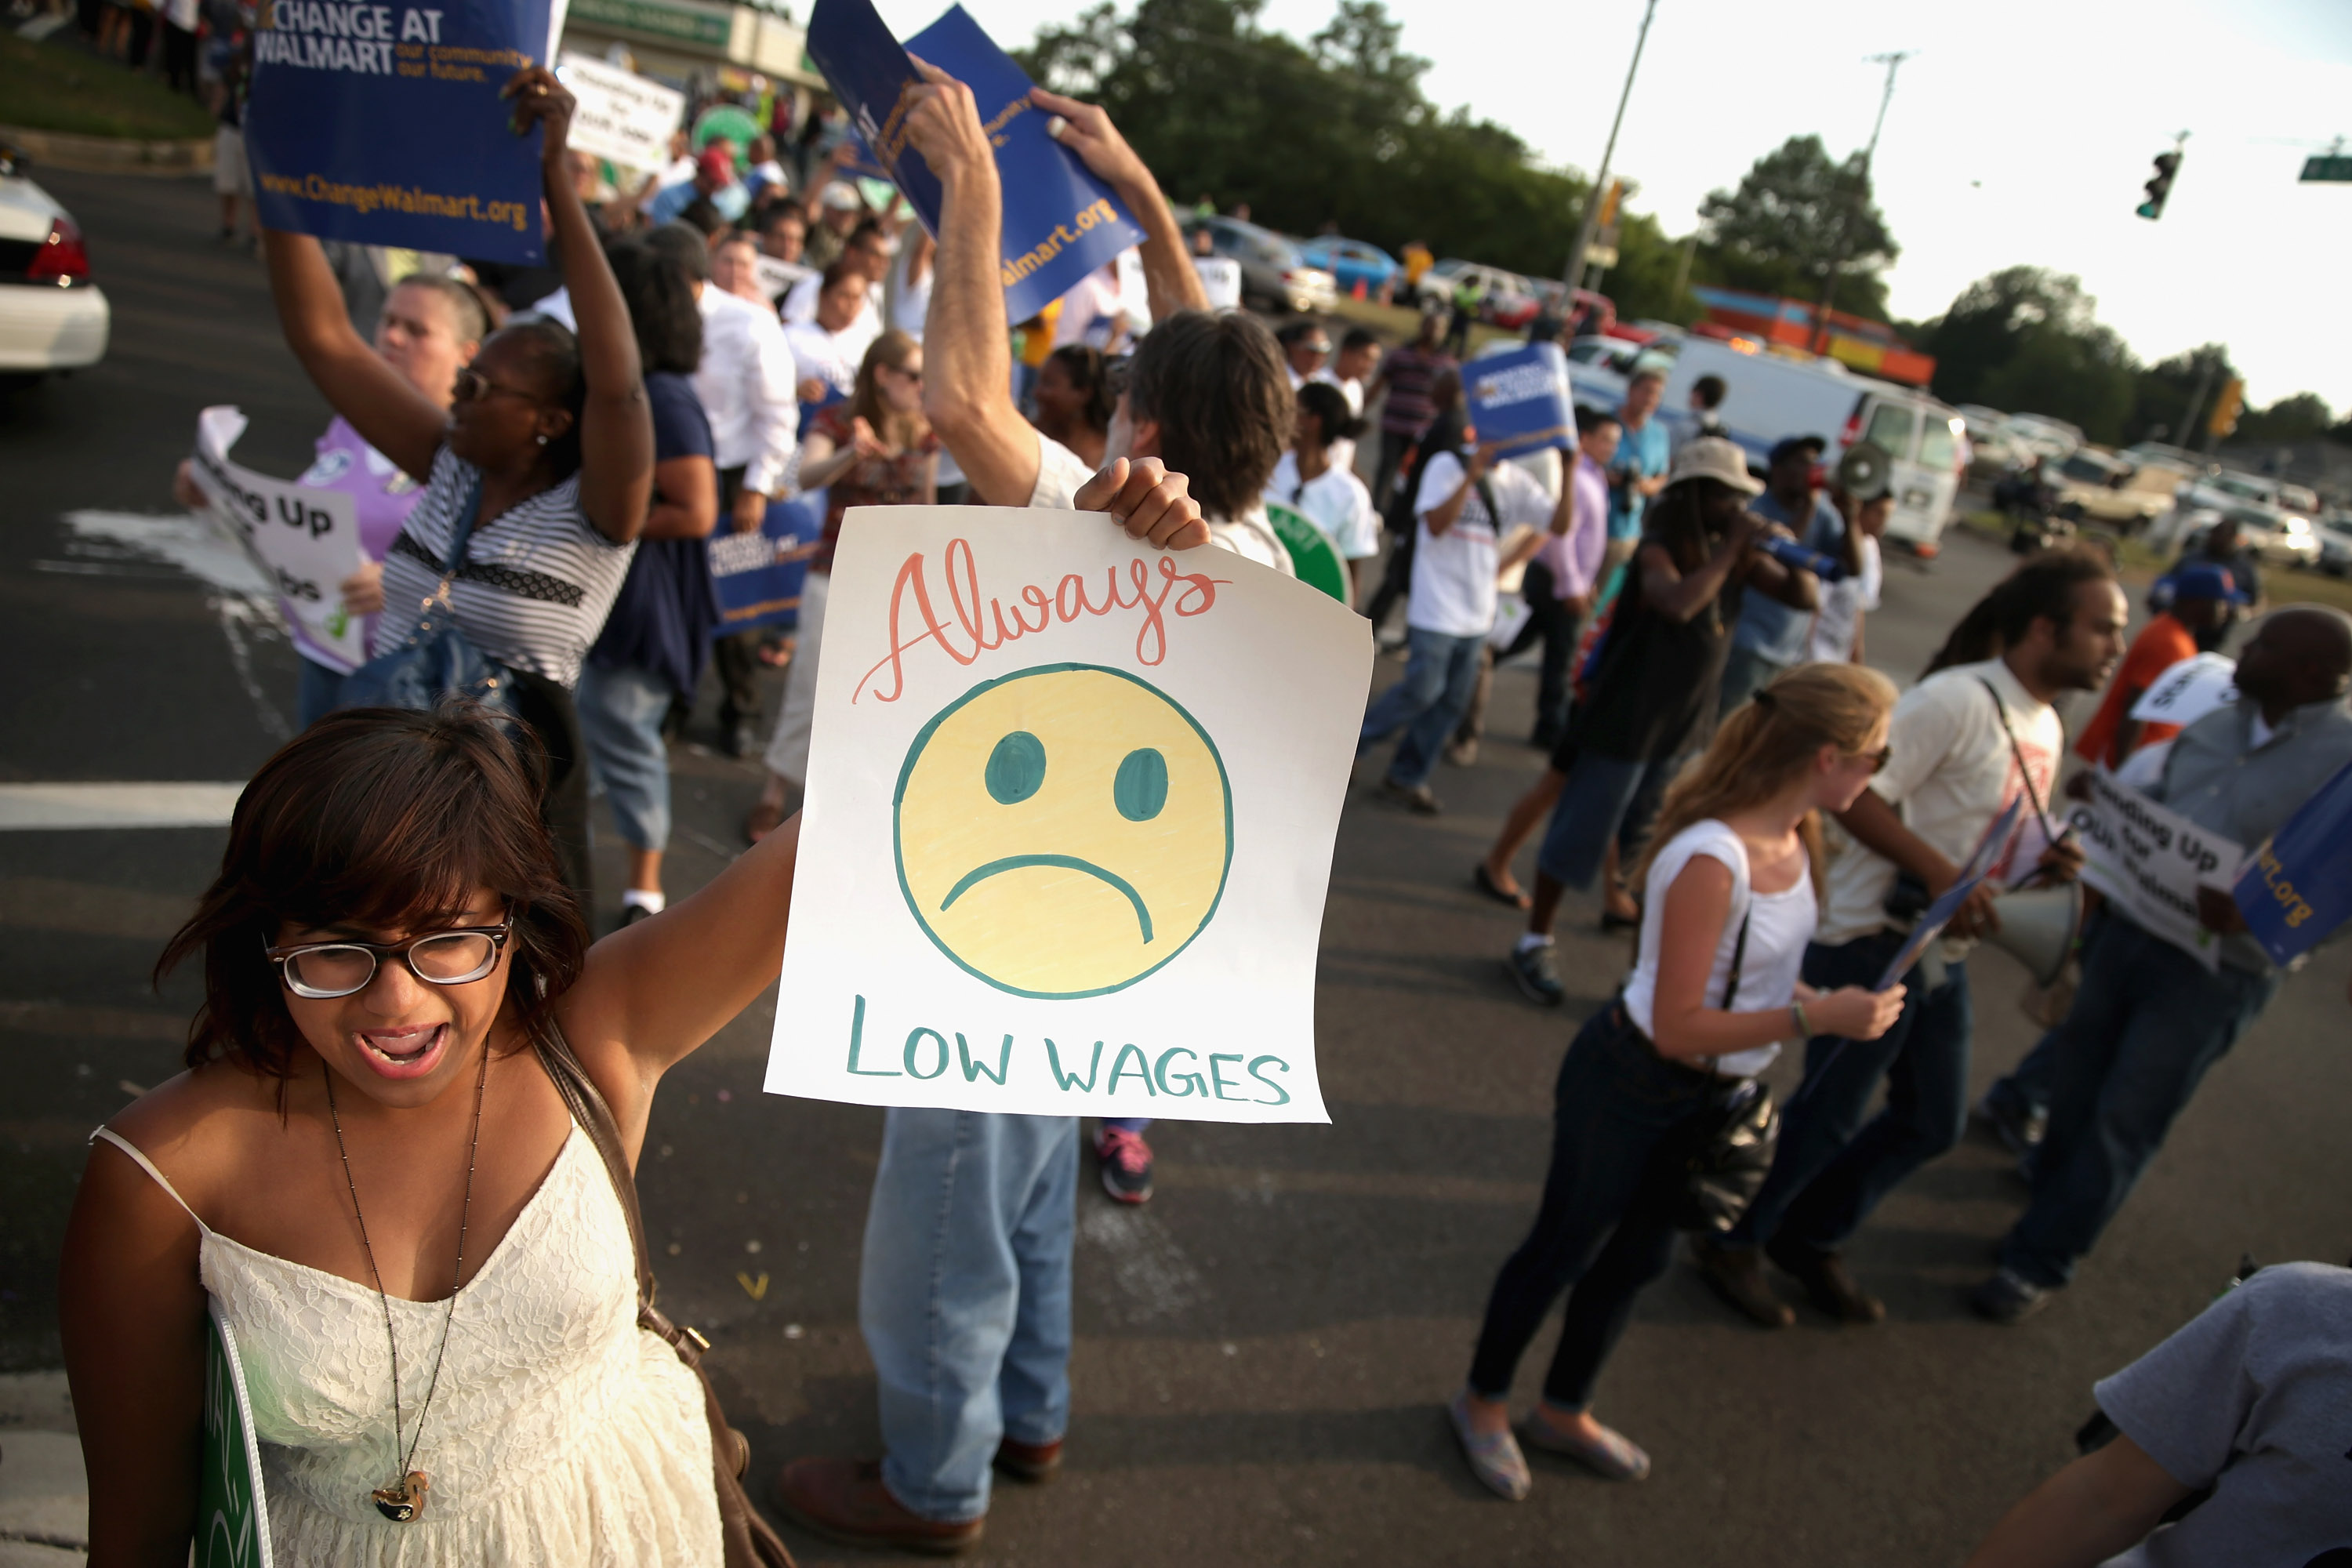 Activists Rally To Support Wal-Mart Workers For Better Jobs And Wages